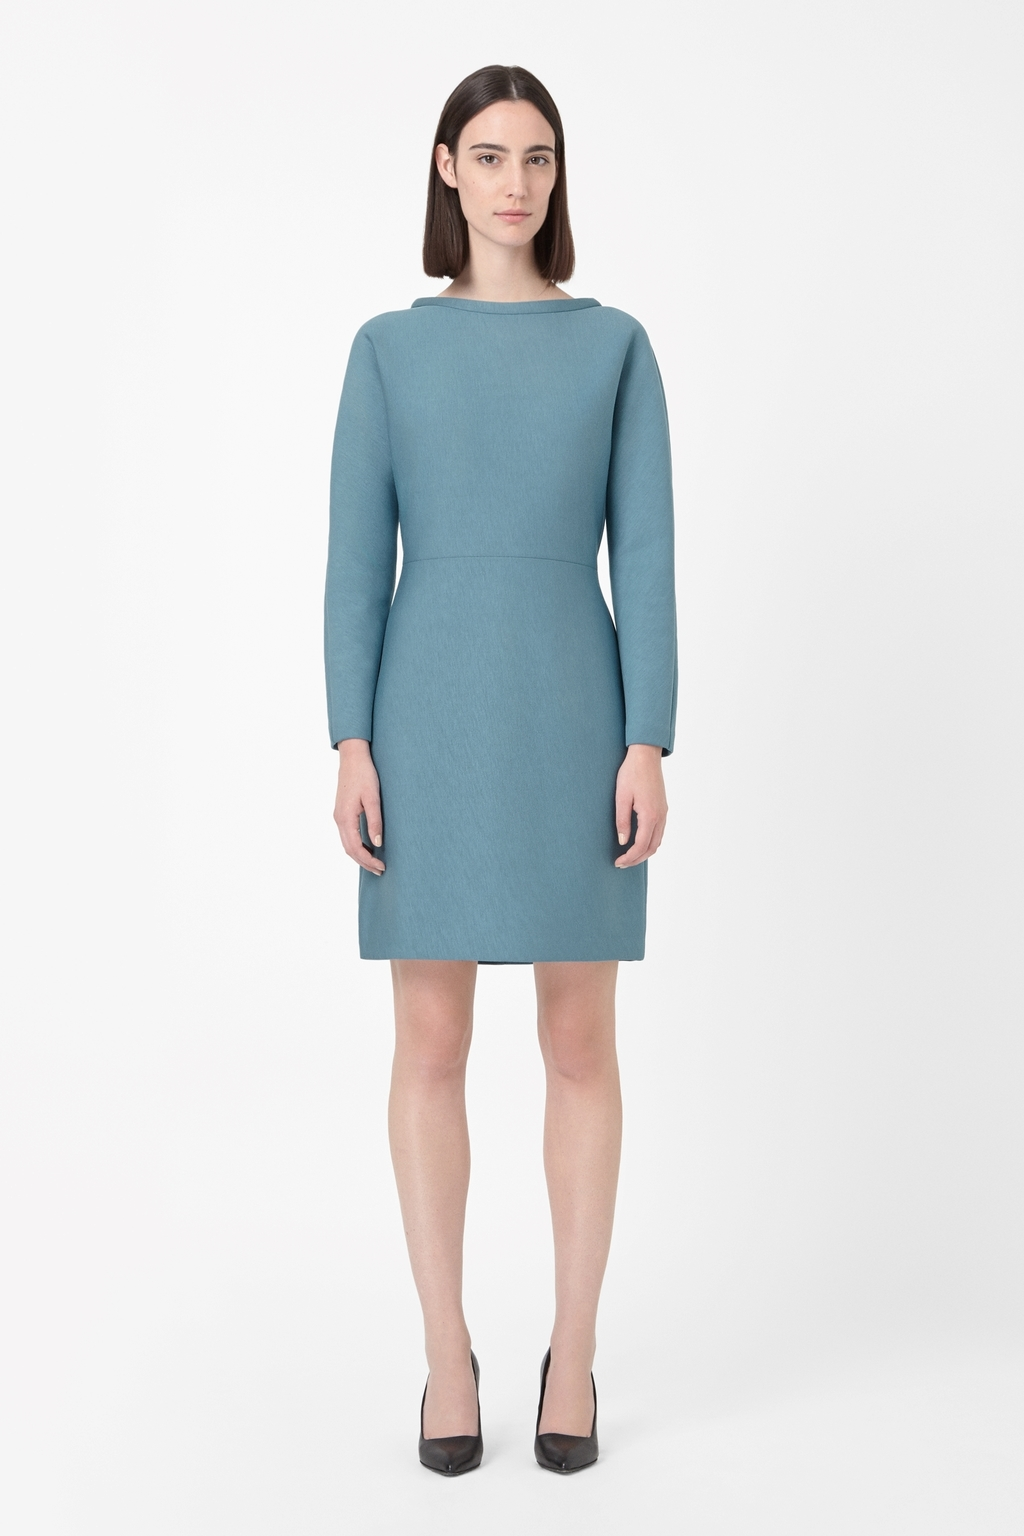 Standing Collar Dress - style: shift; neckline: slash/boat neckline; fit: tailored/fitted; pattern: plain; predominant colour: denim; occasions: casual, work, occasion, creative work; length: just above the knee; fibres: wool - mix; sleeve length: long sleeve; sleeve style: standard; texture group: jersey - stretchy/drapey; season: a/w 2014